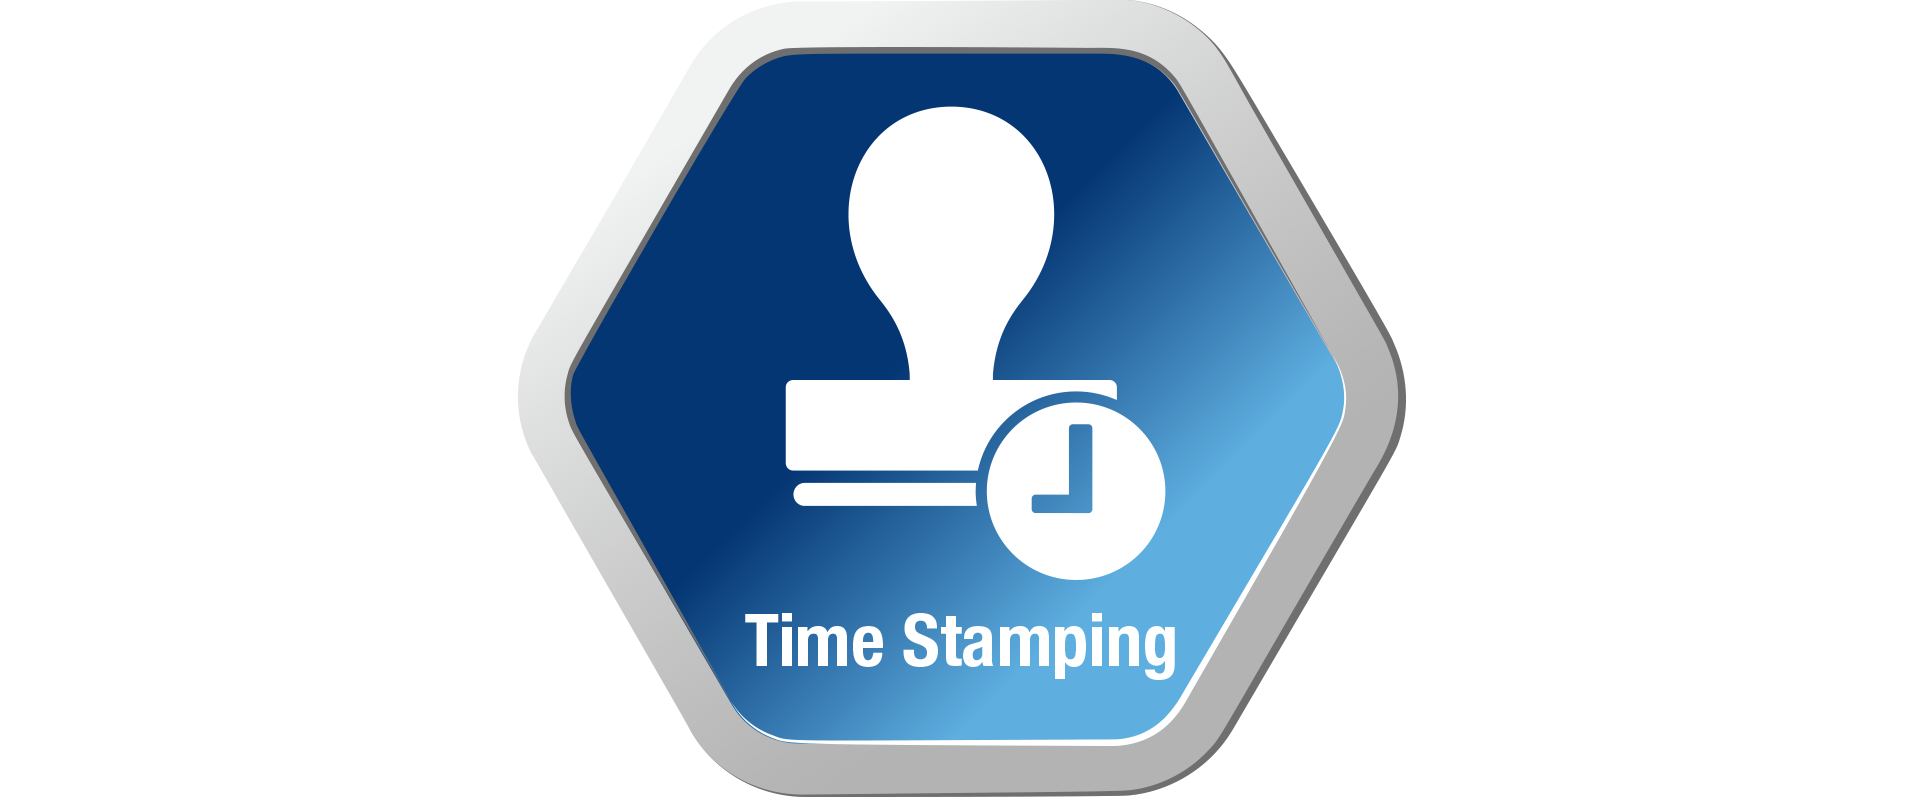 Precise Time Stamping